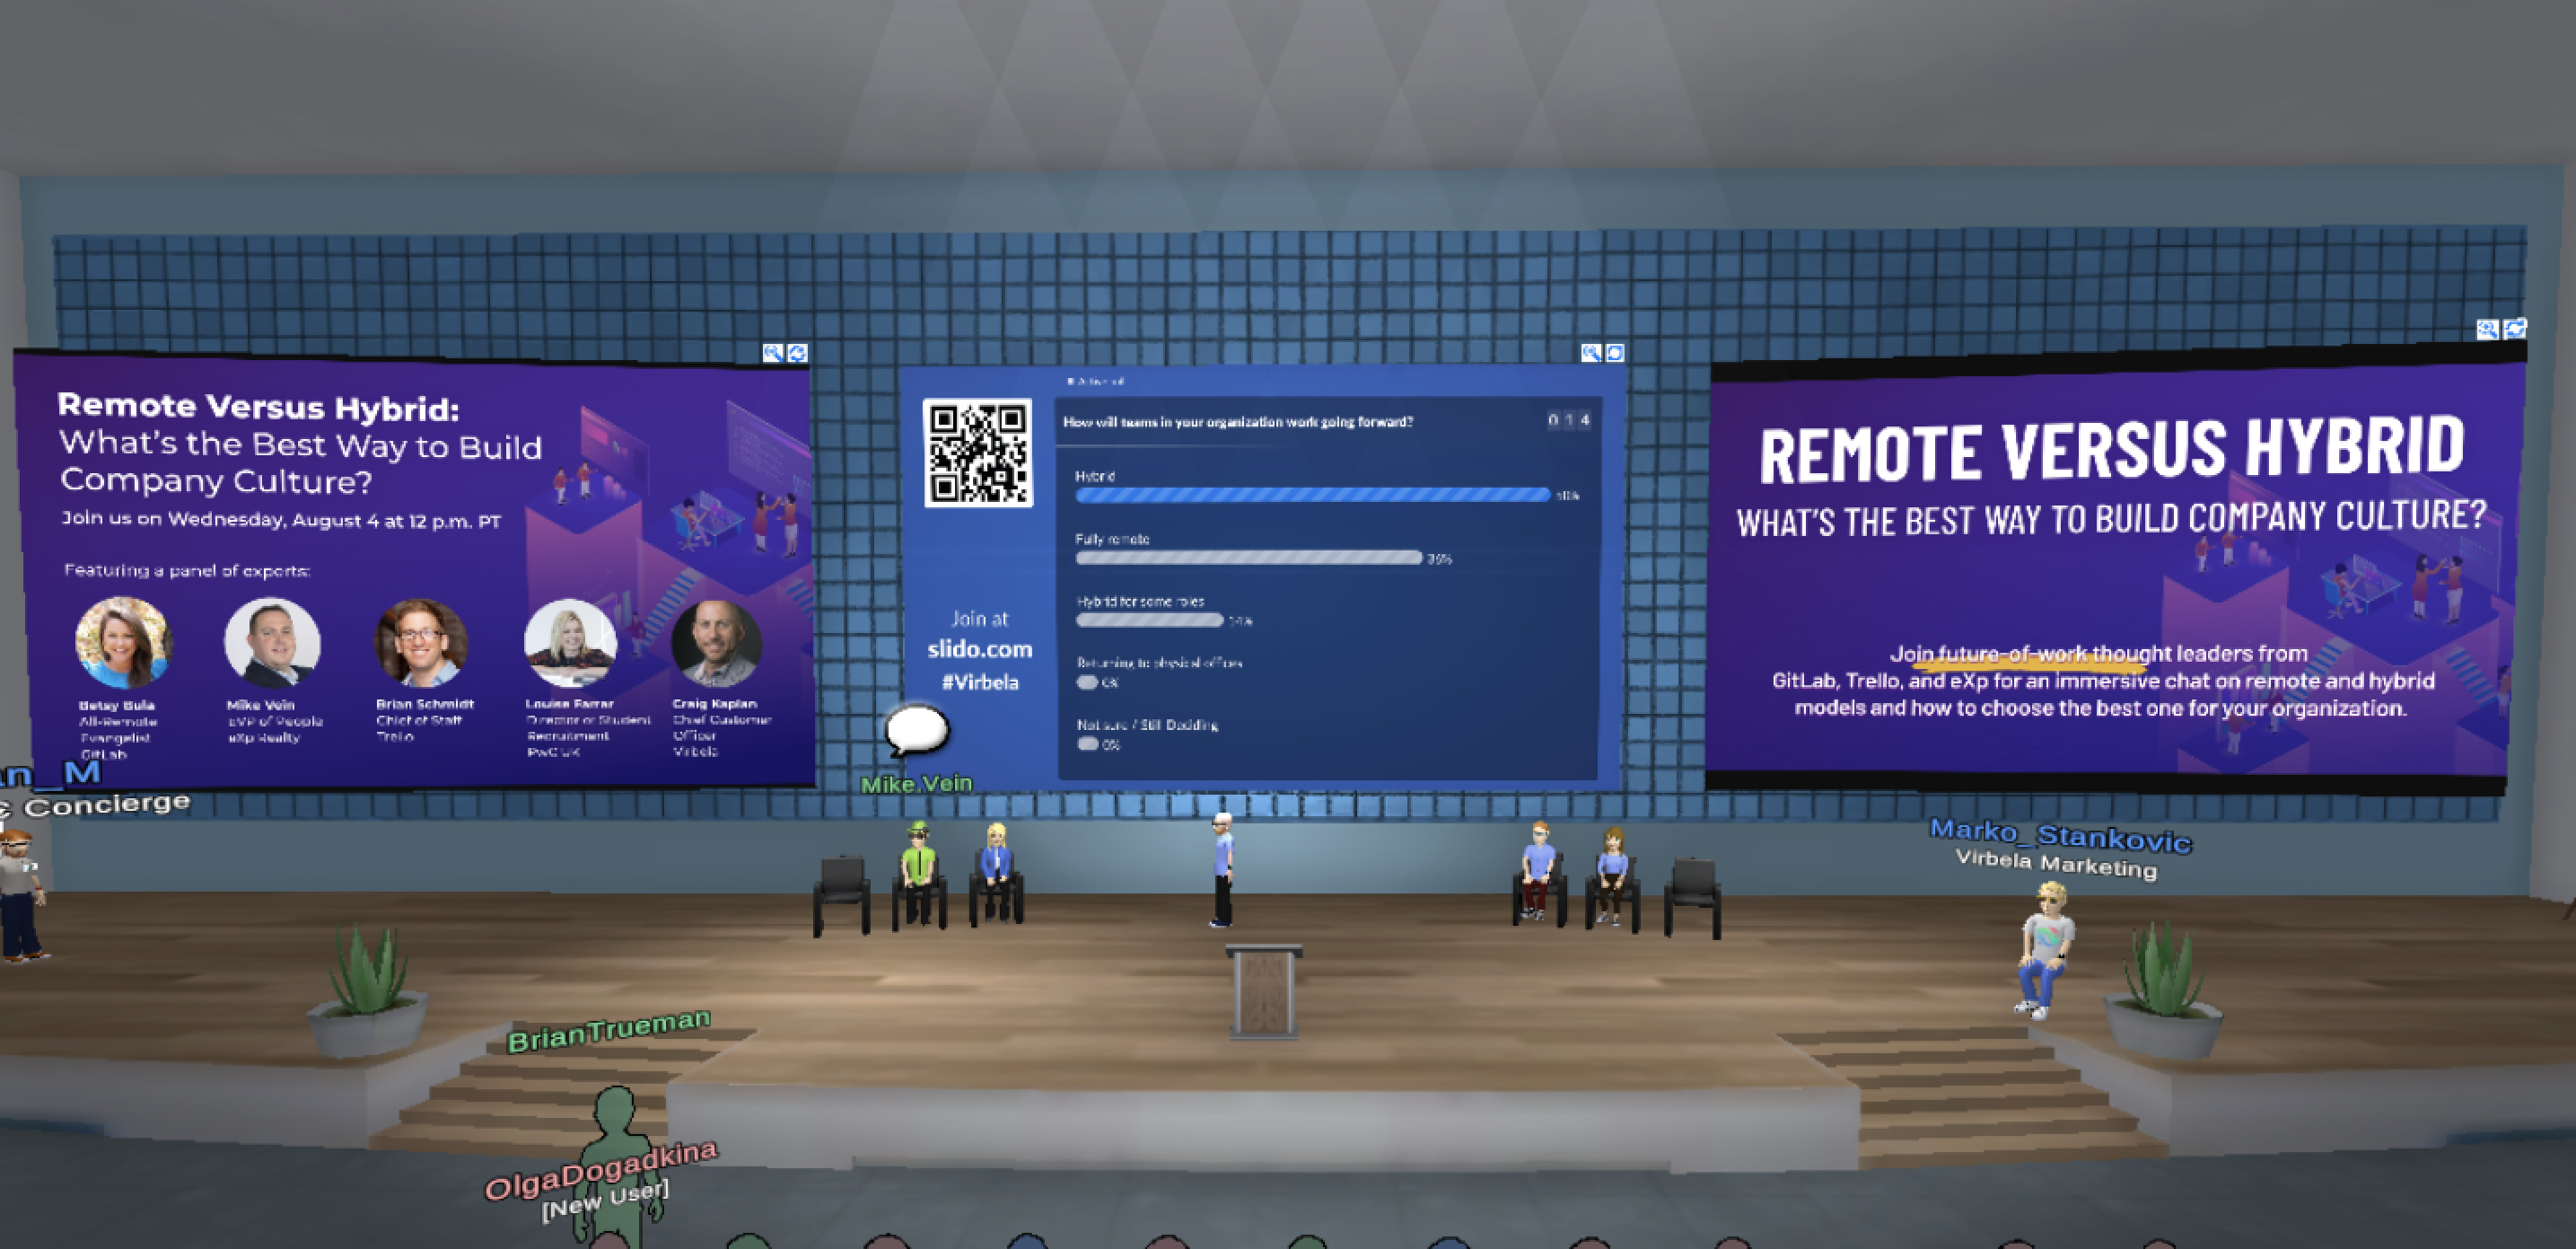 Remote Workforces: Taking the Lead to Design the Companies of the Future